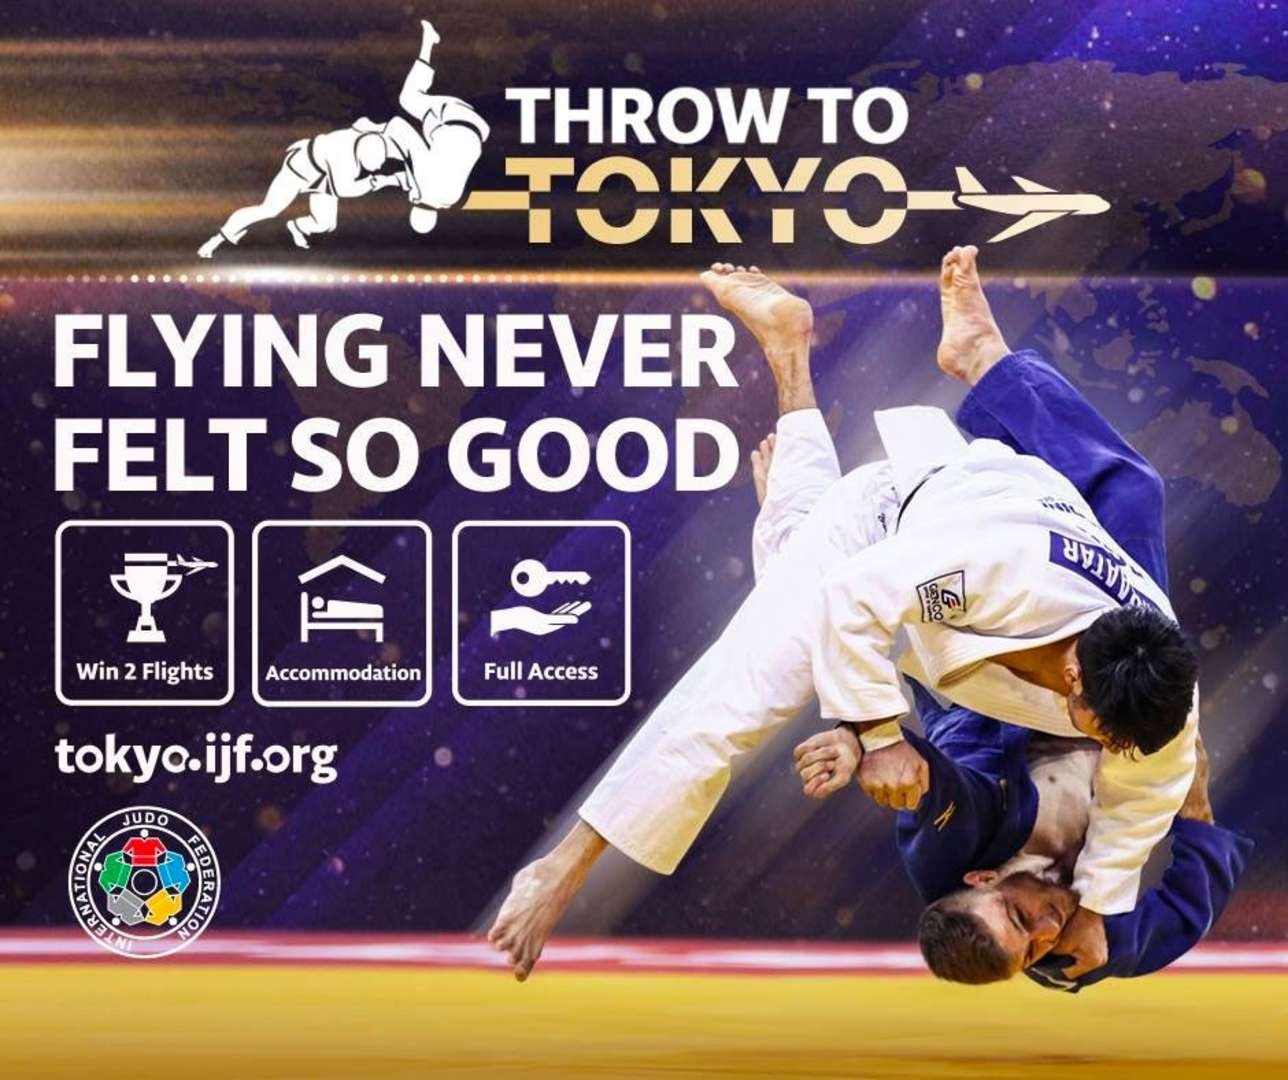 Throw to Tokyo / IJF org